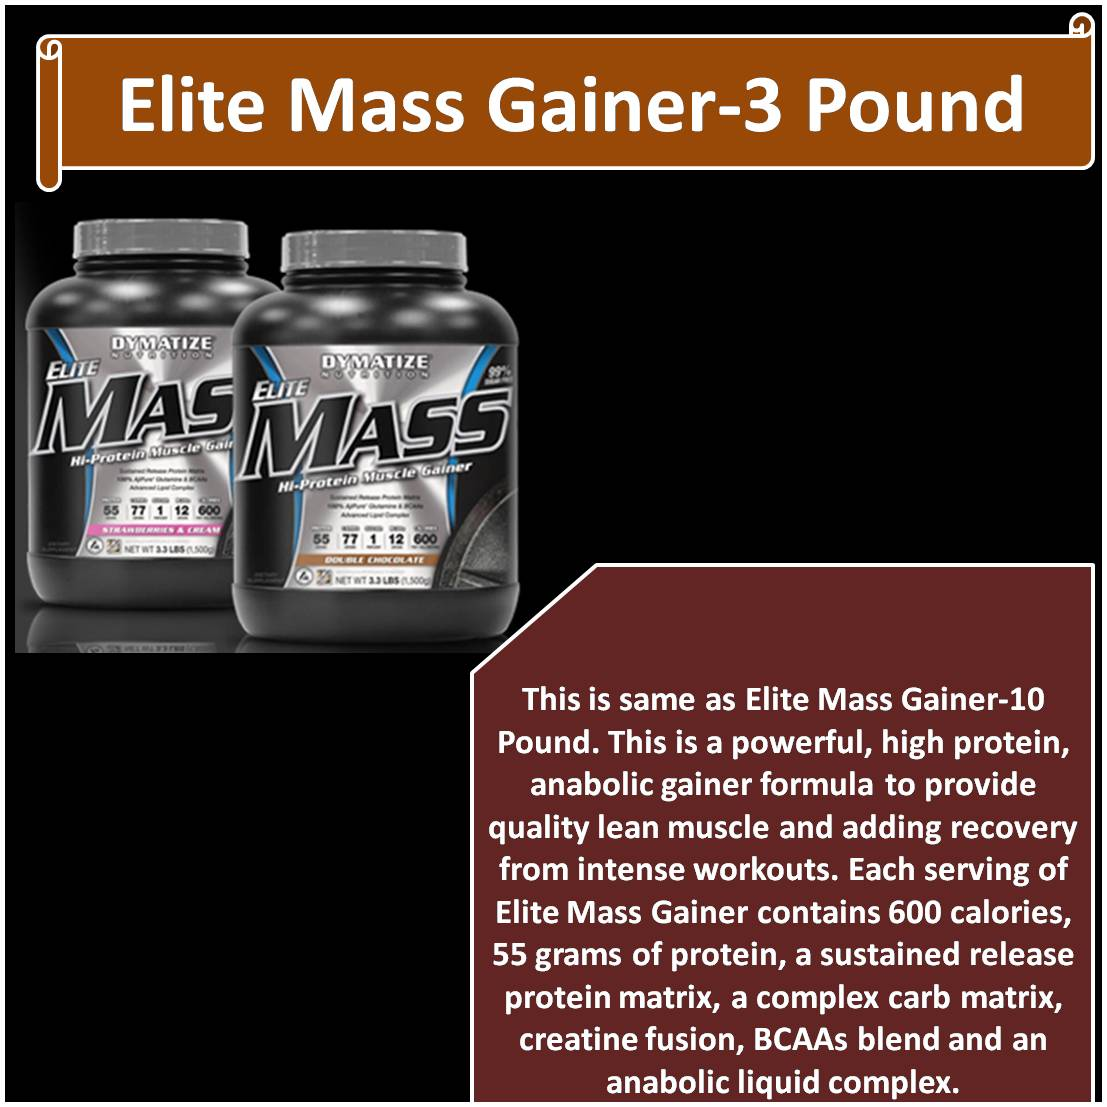 Elite Mass Gainer-3 Pound